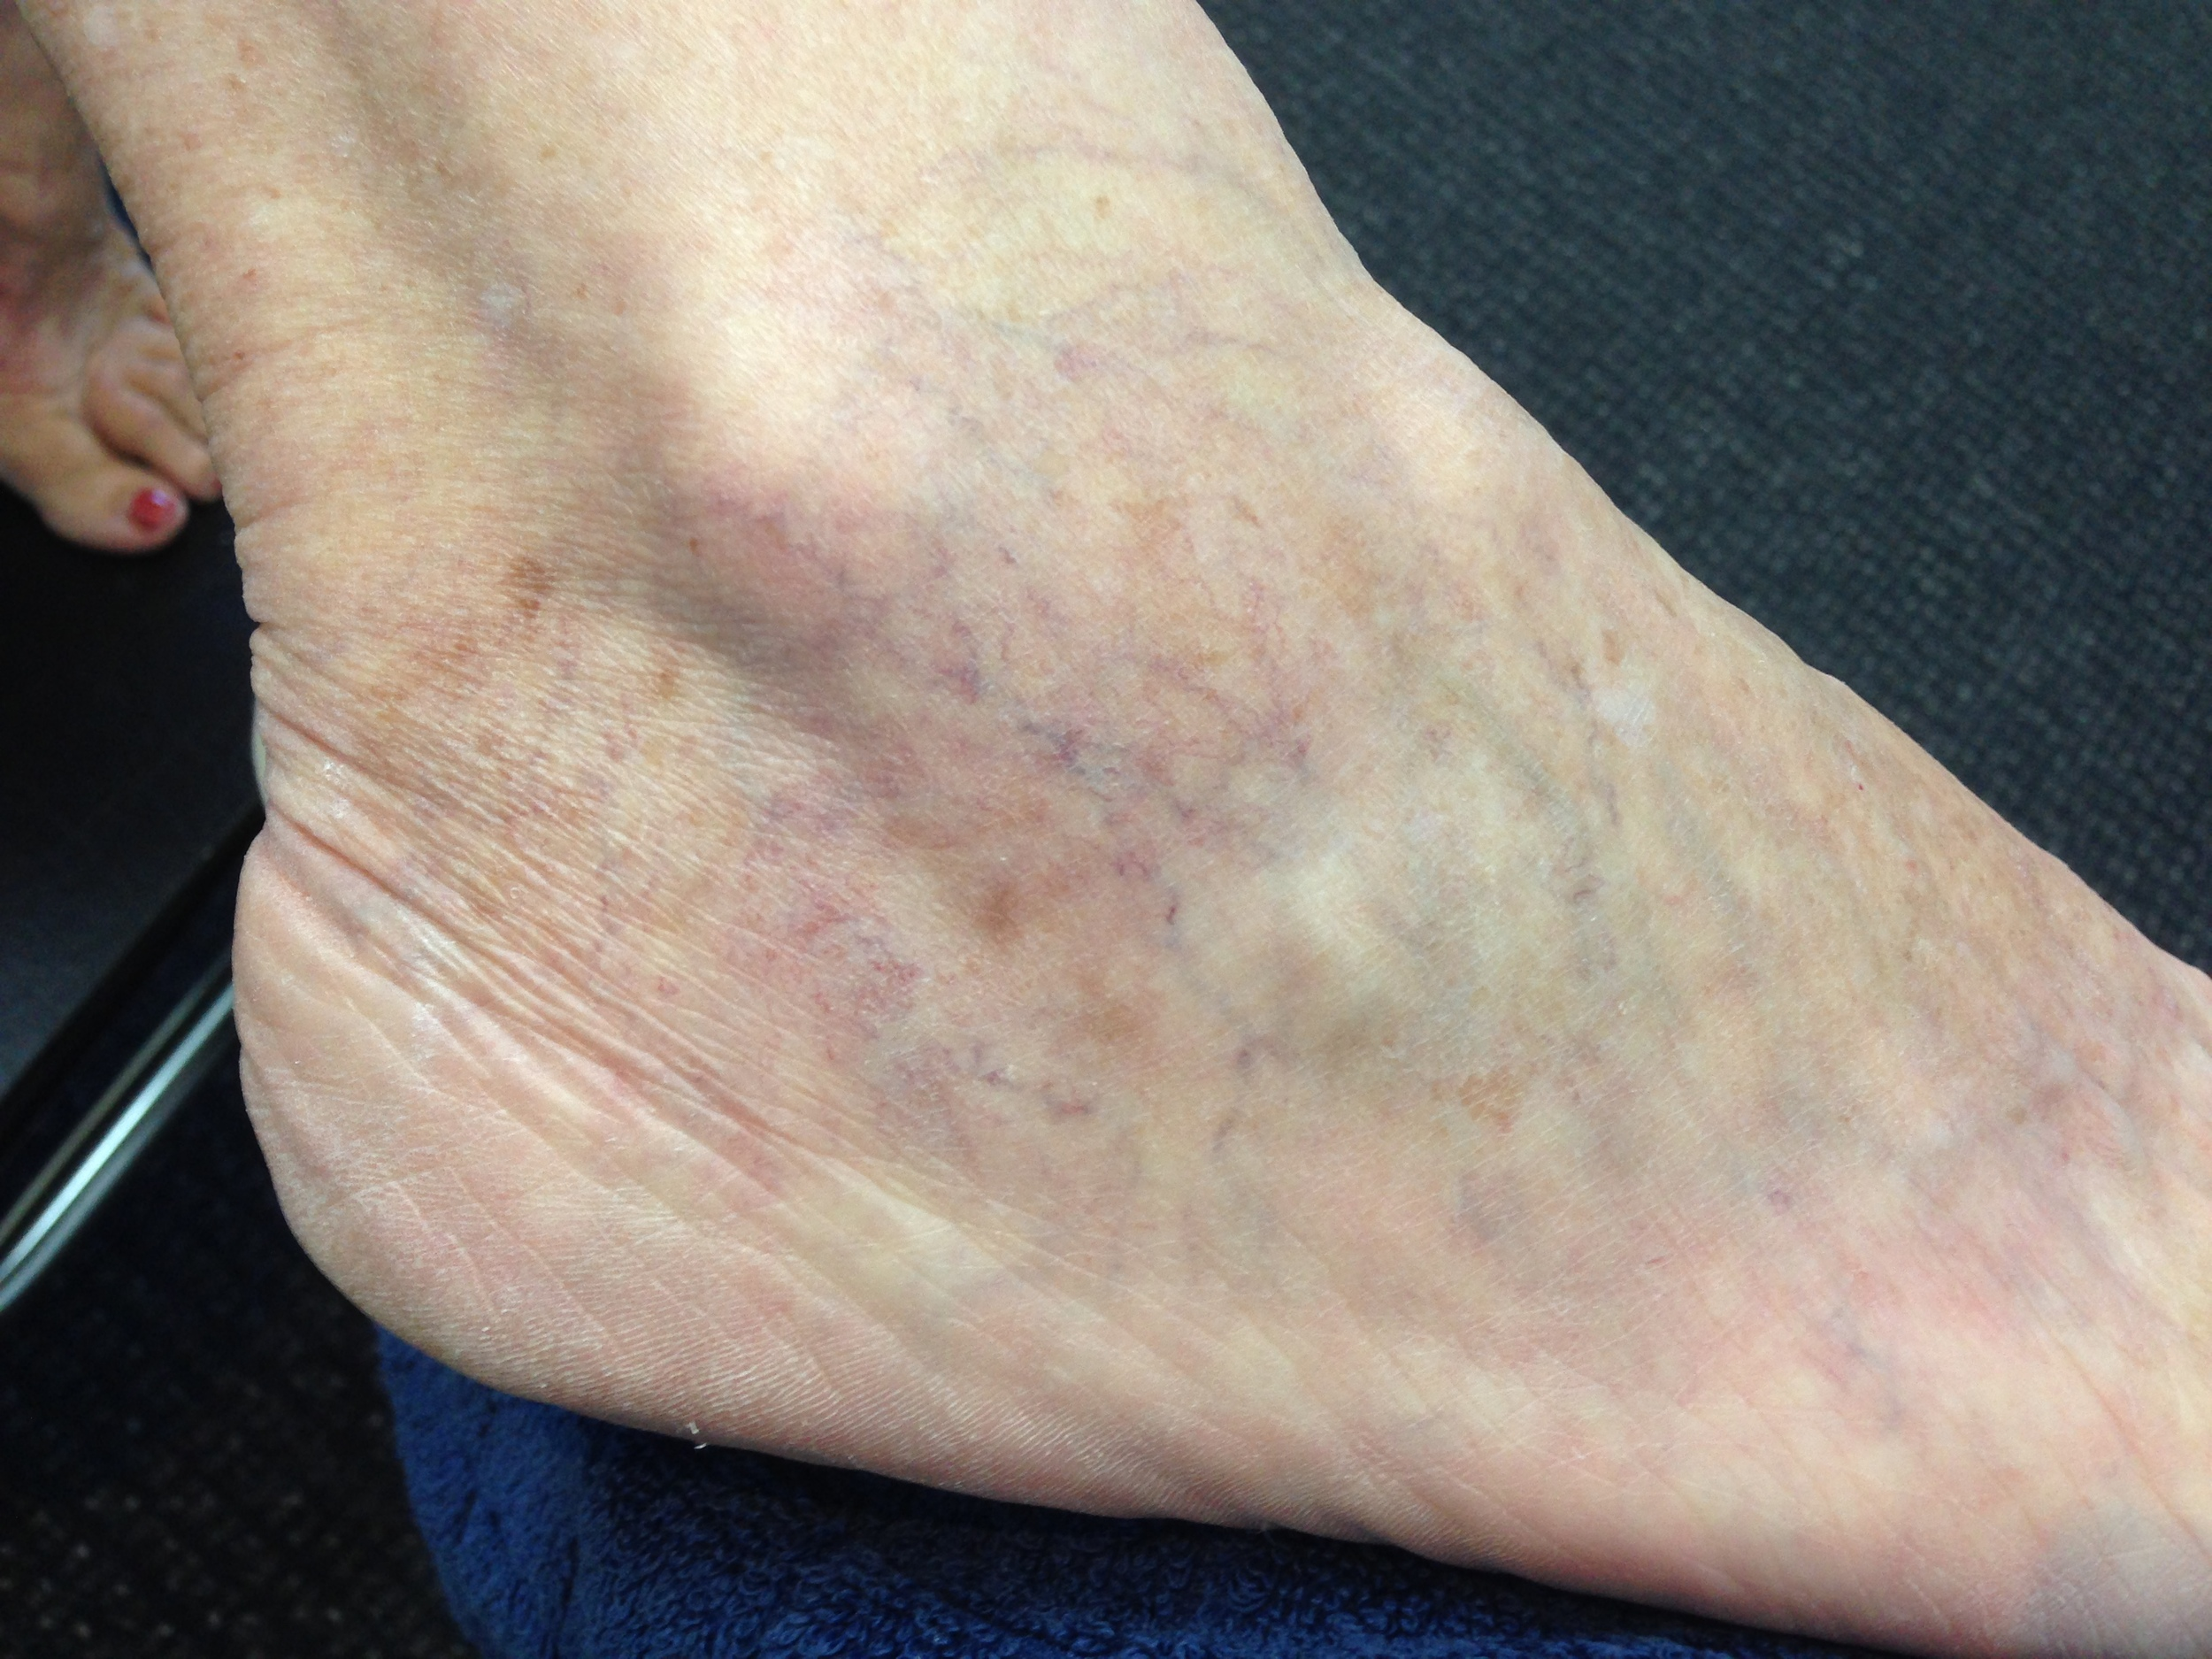 Treatment: EndoVenous Laser Therapy and Ultrasound Guided Sclerotherapy